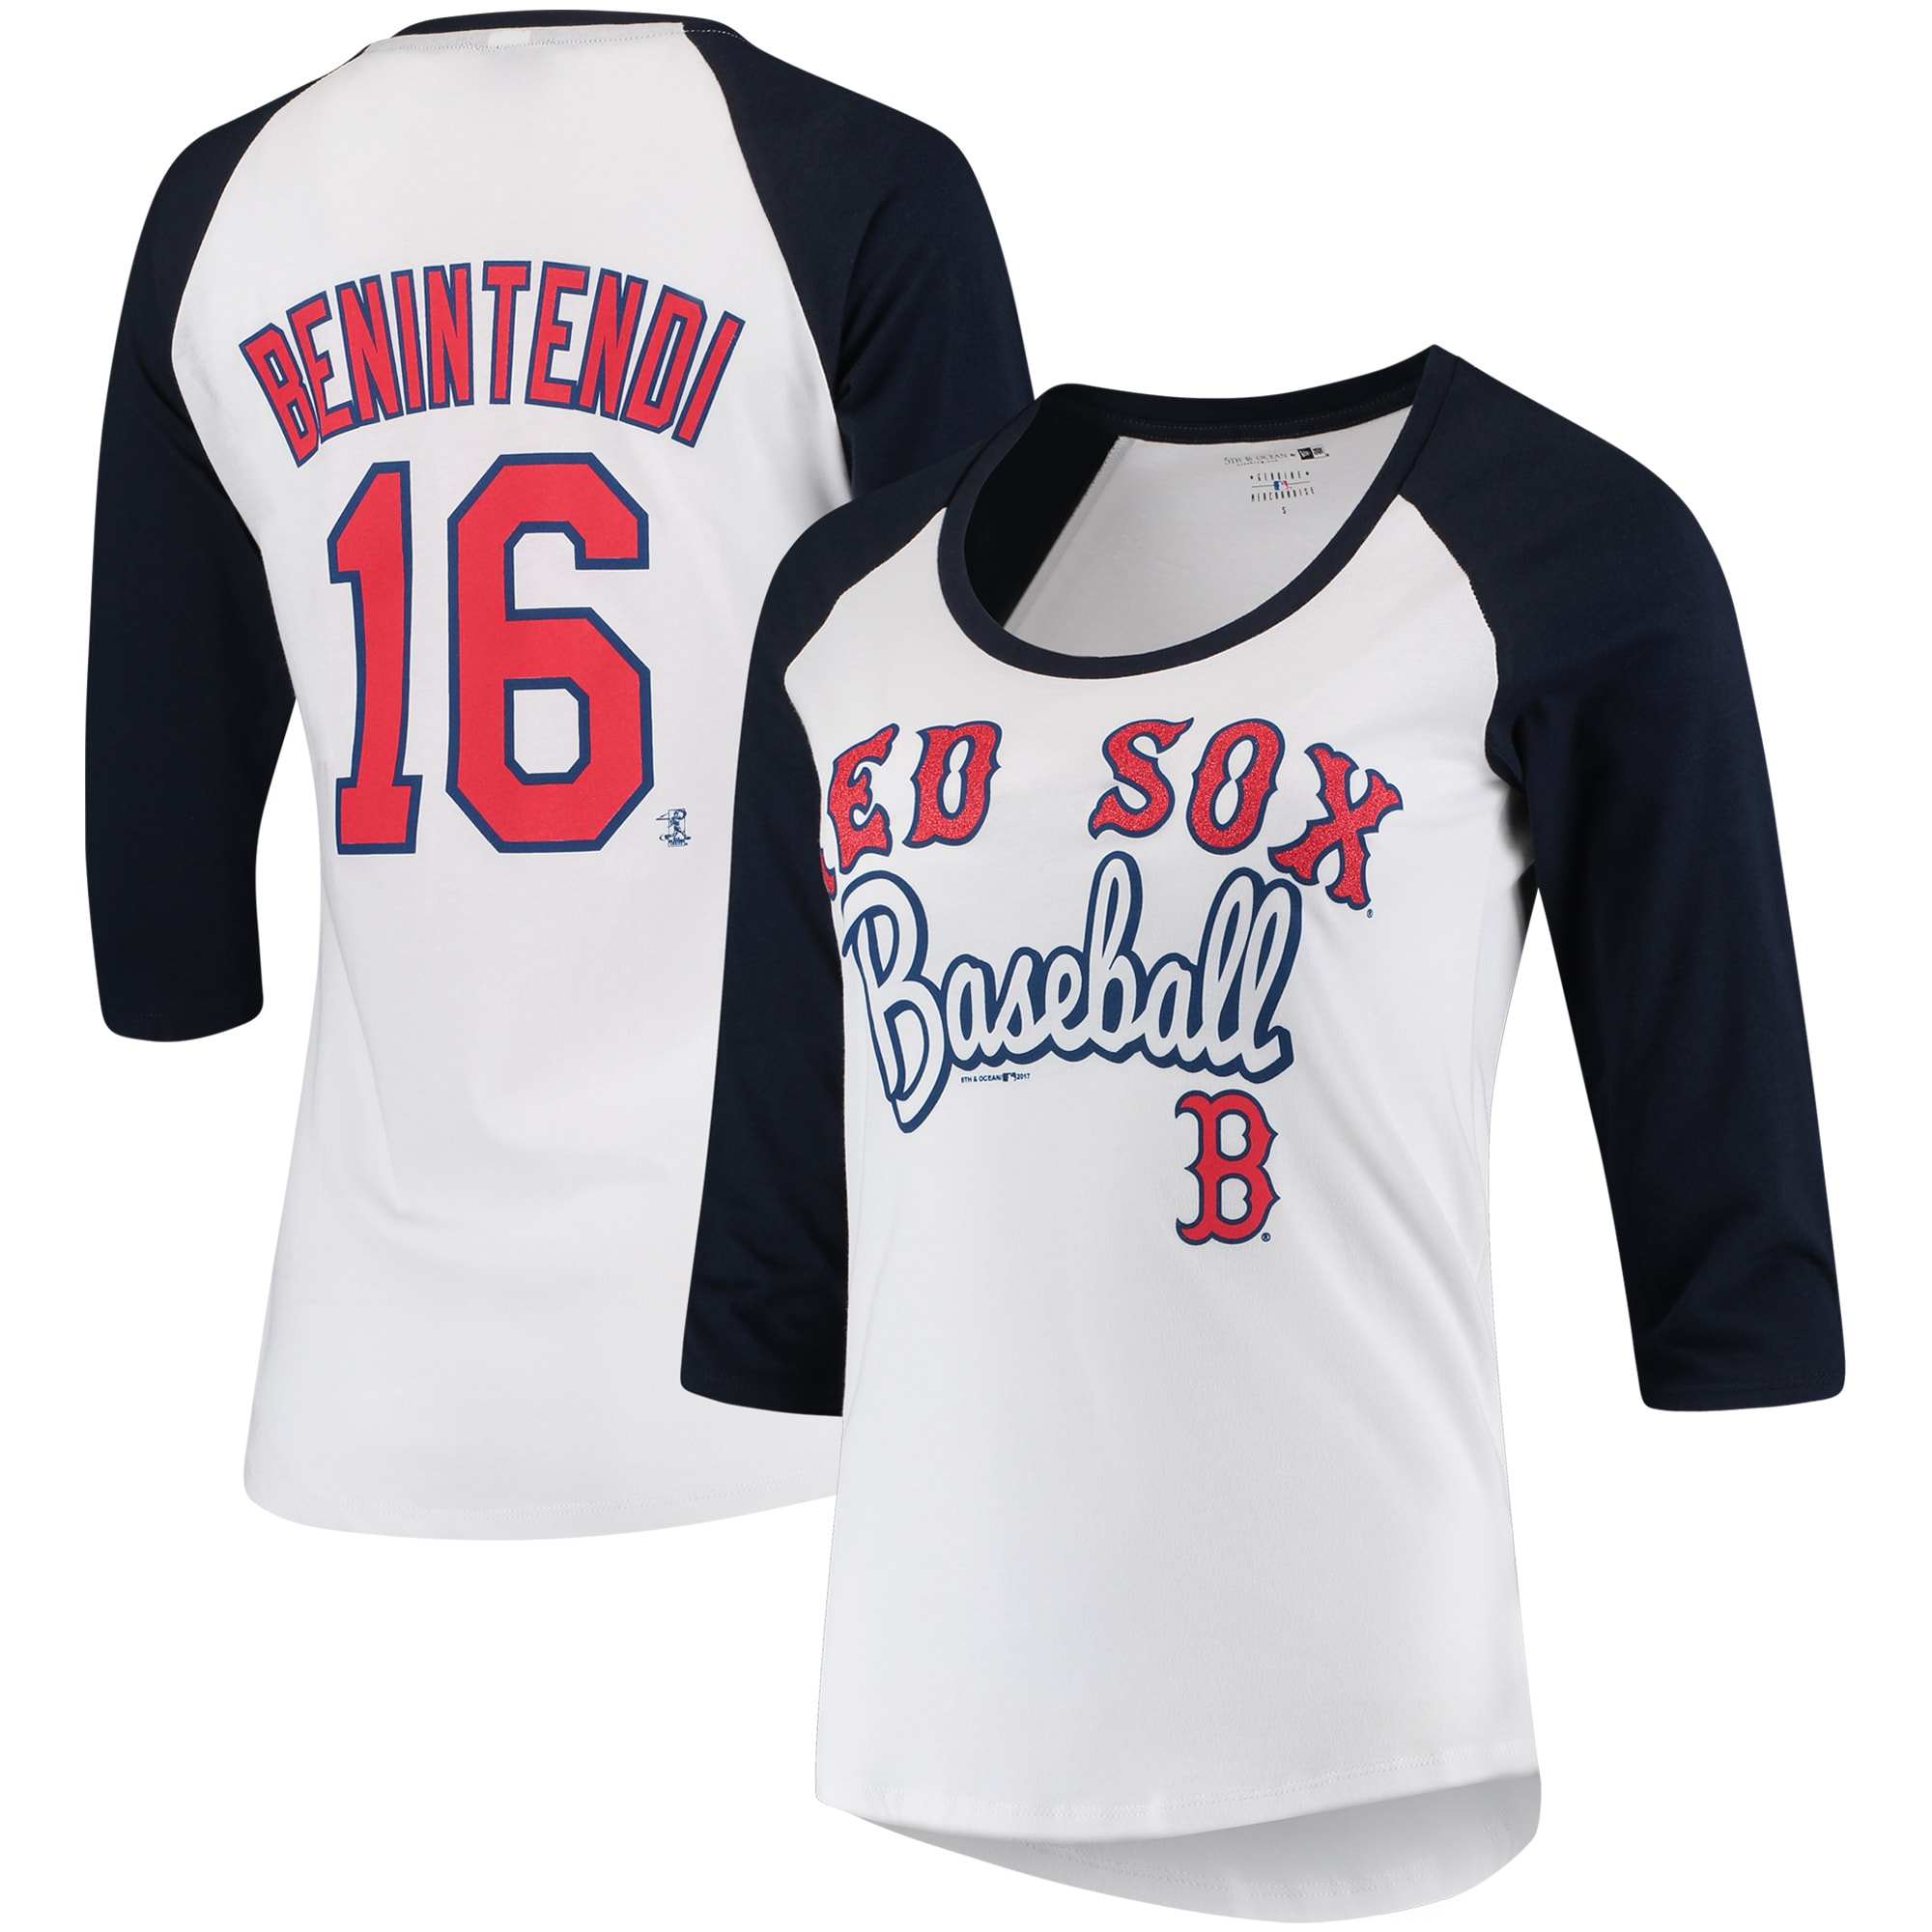 Andrew Benintendi Boston Red Sox 5th & Ocean by New Era Women's Glitter 3/4-Sleeve Raglan T-Shirt - White/Navy